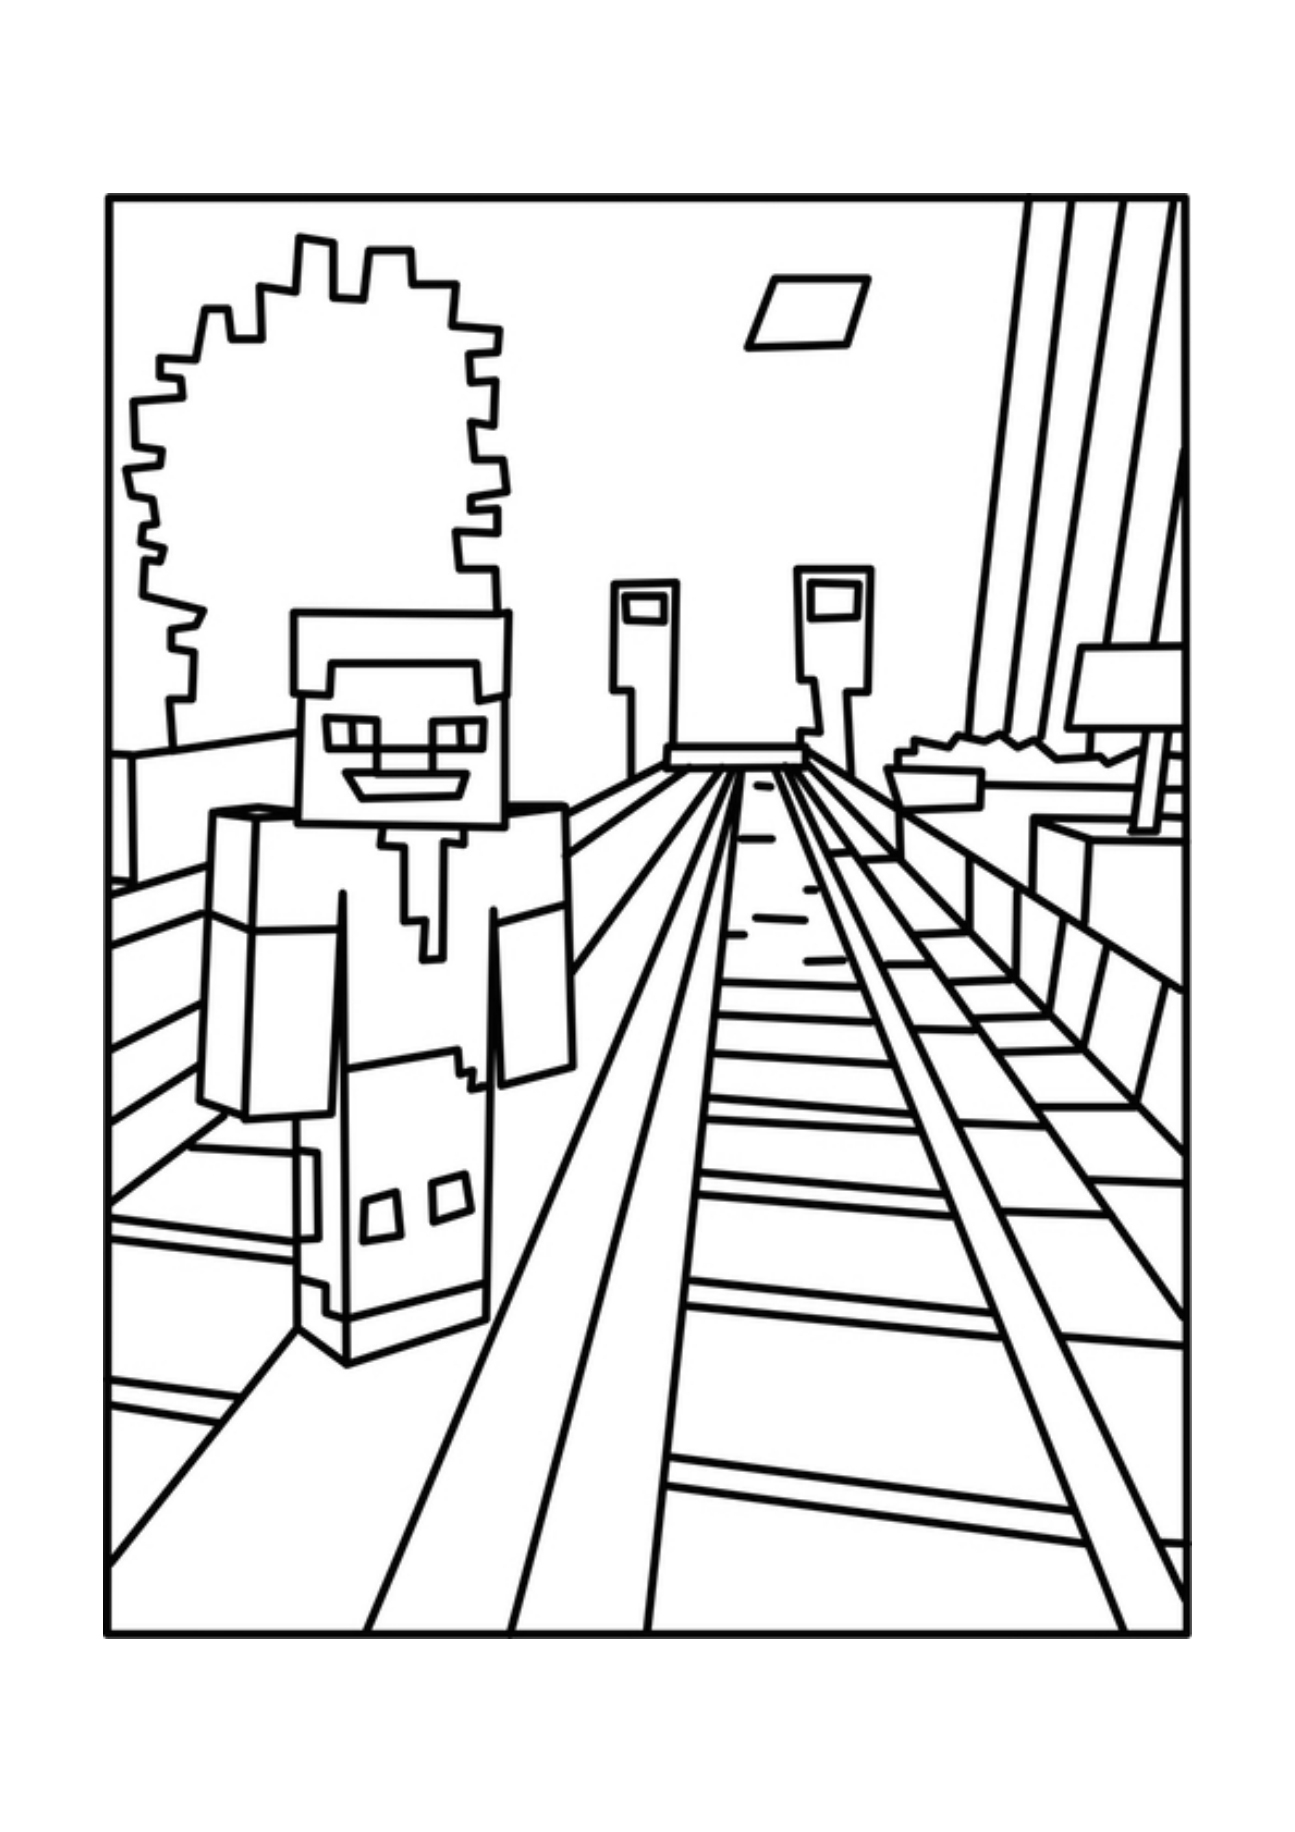 minecraft coloring minecraft coloring pages best coloring pages for kids minecraft coloring 1 1